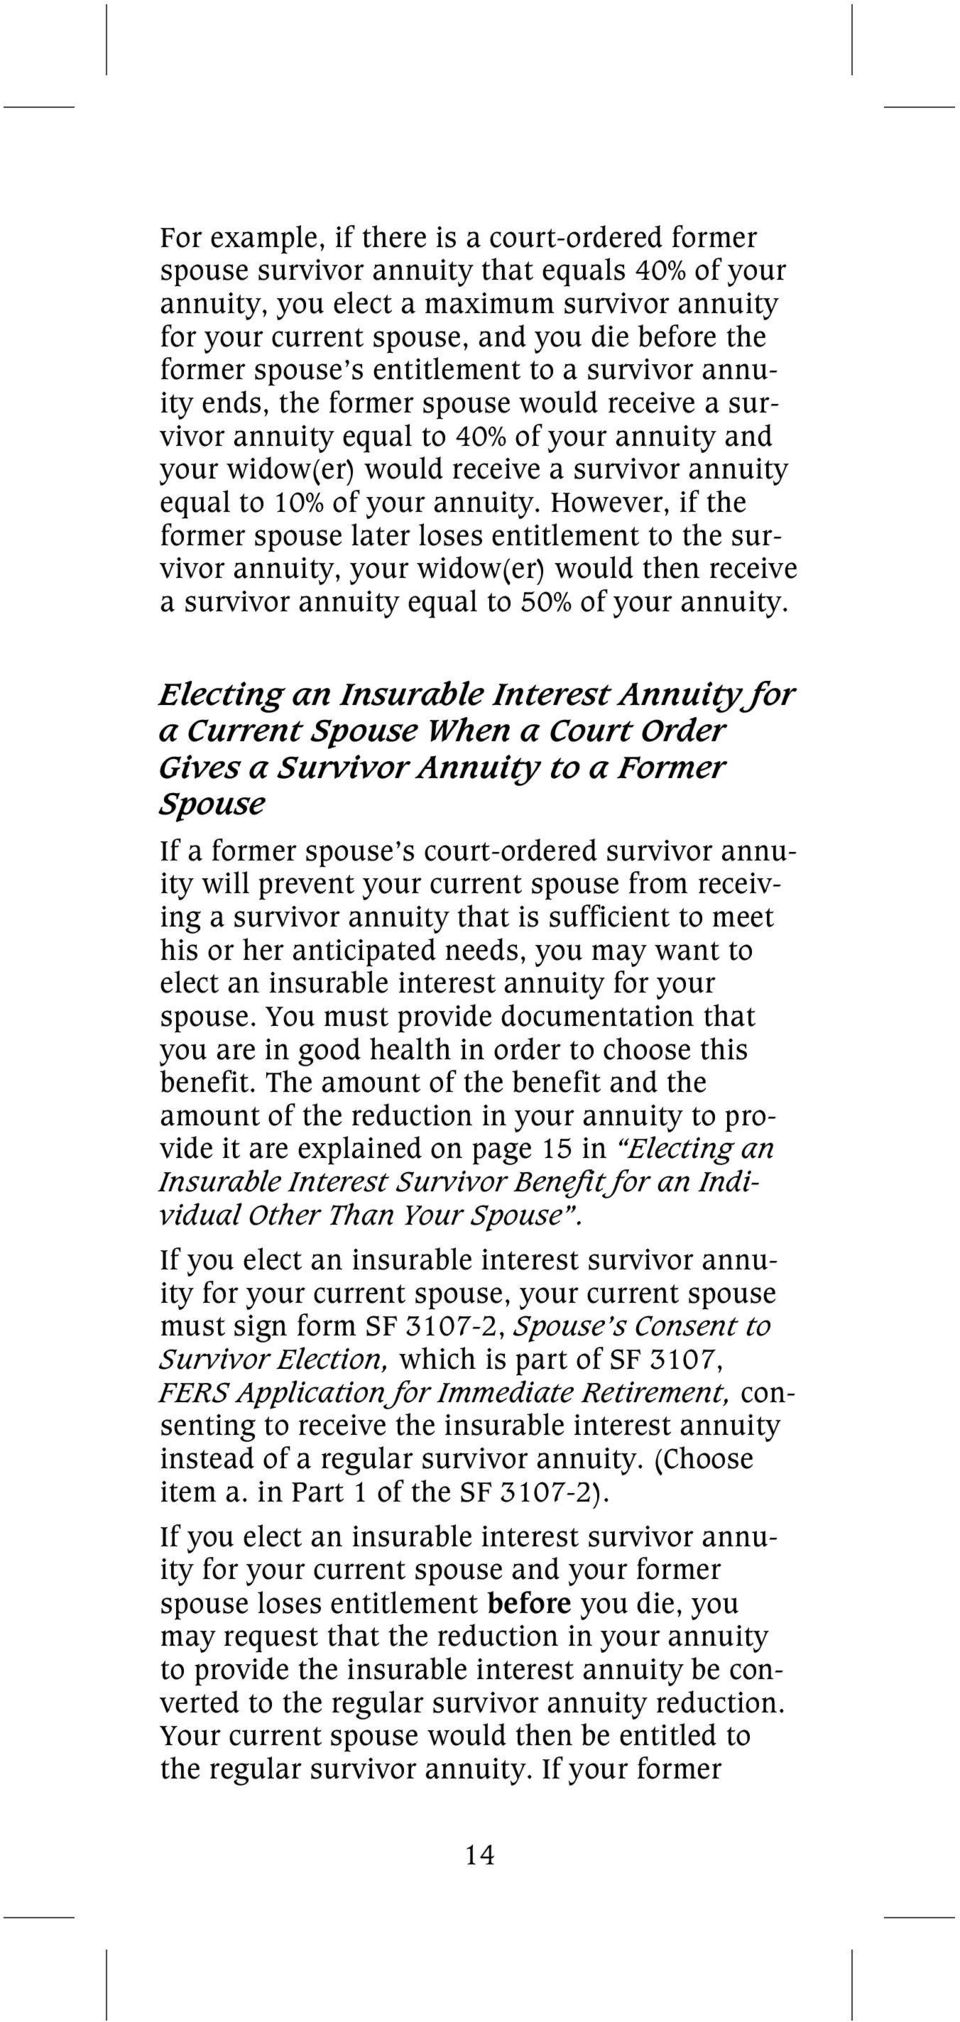 your annuity. However, if the former spouse later loses entitlement to the survivor annuity, your widow(er) would then receive a survivor annuity equal to 50% of your annuity.